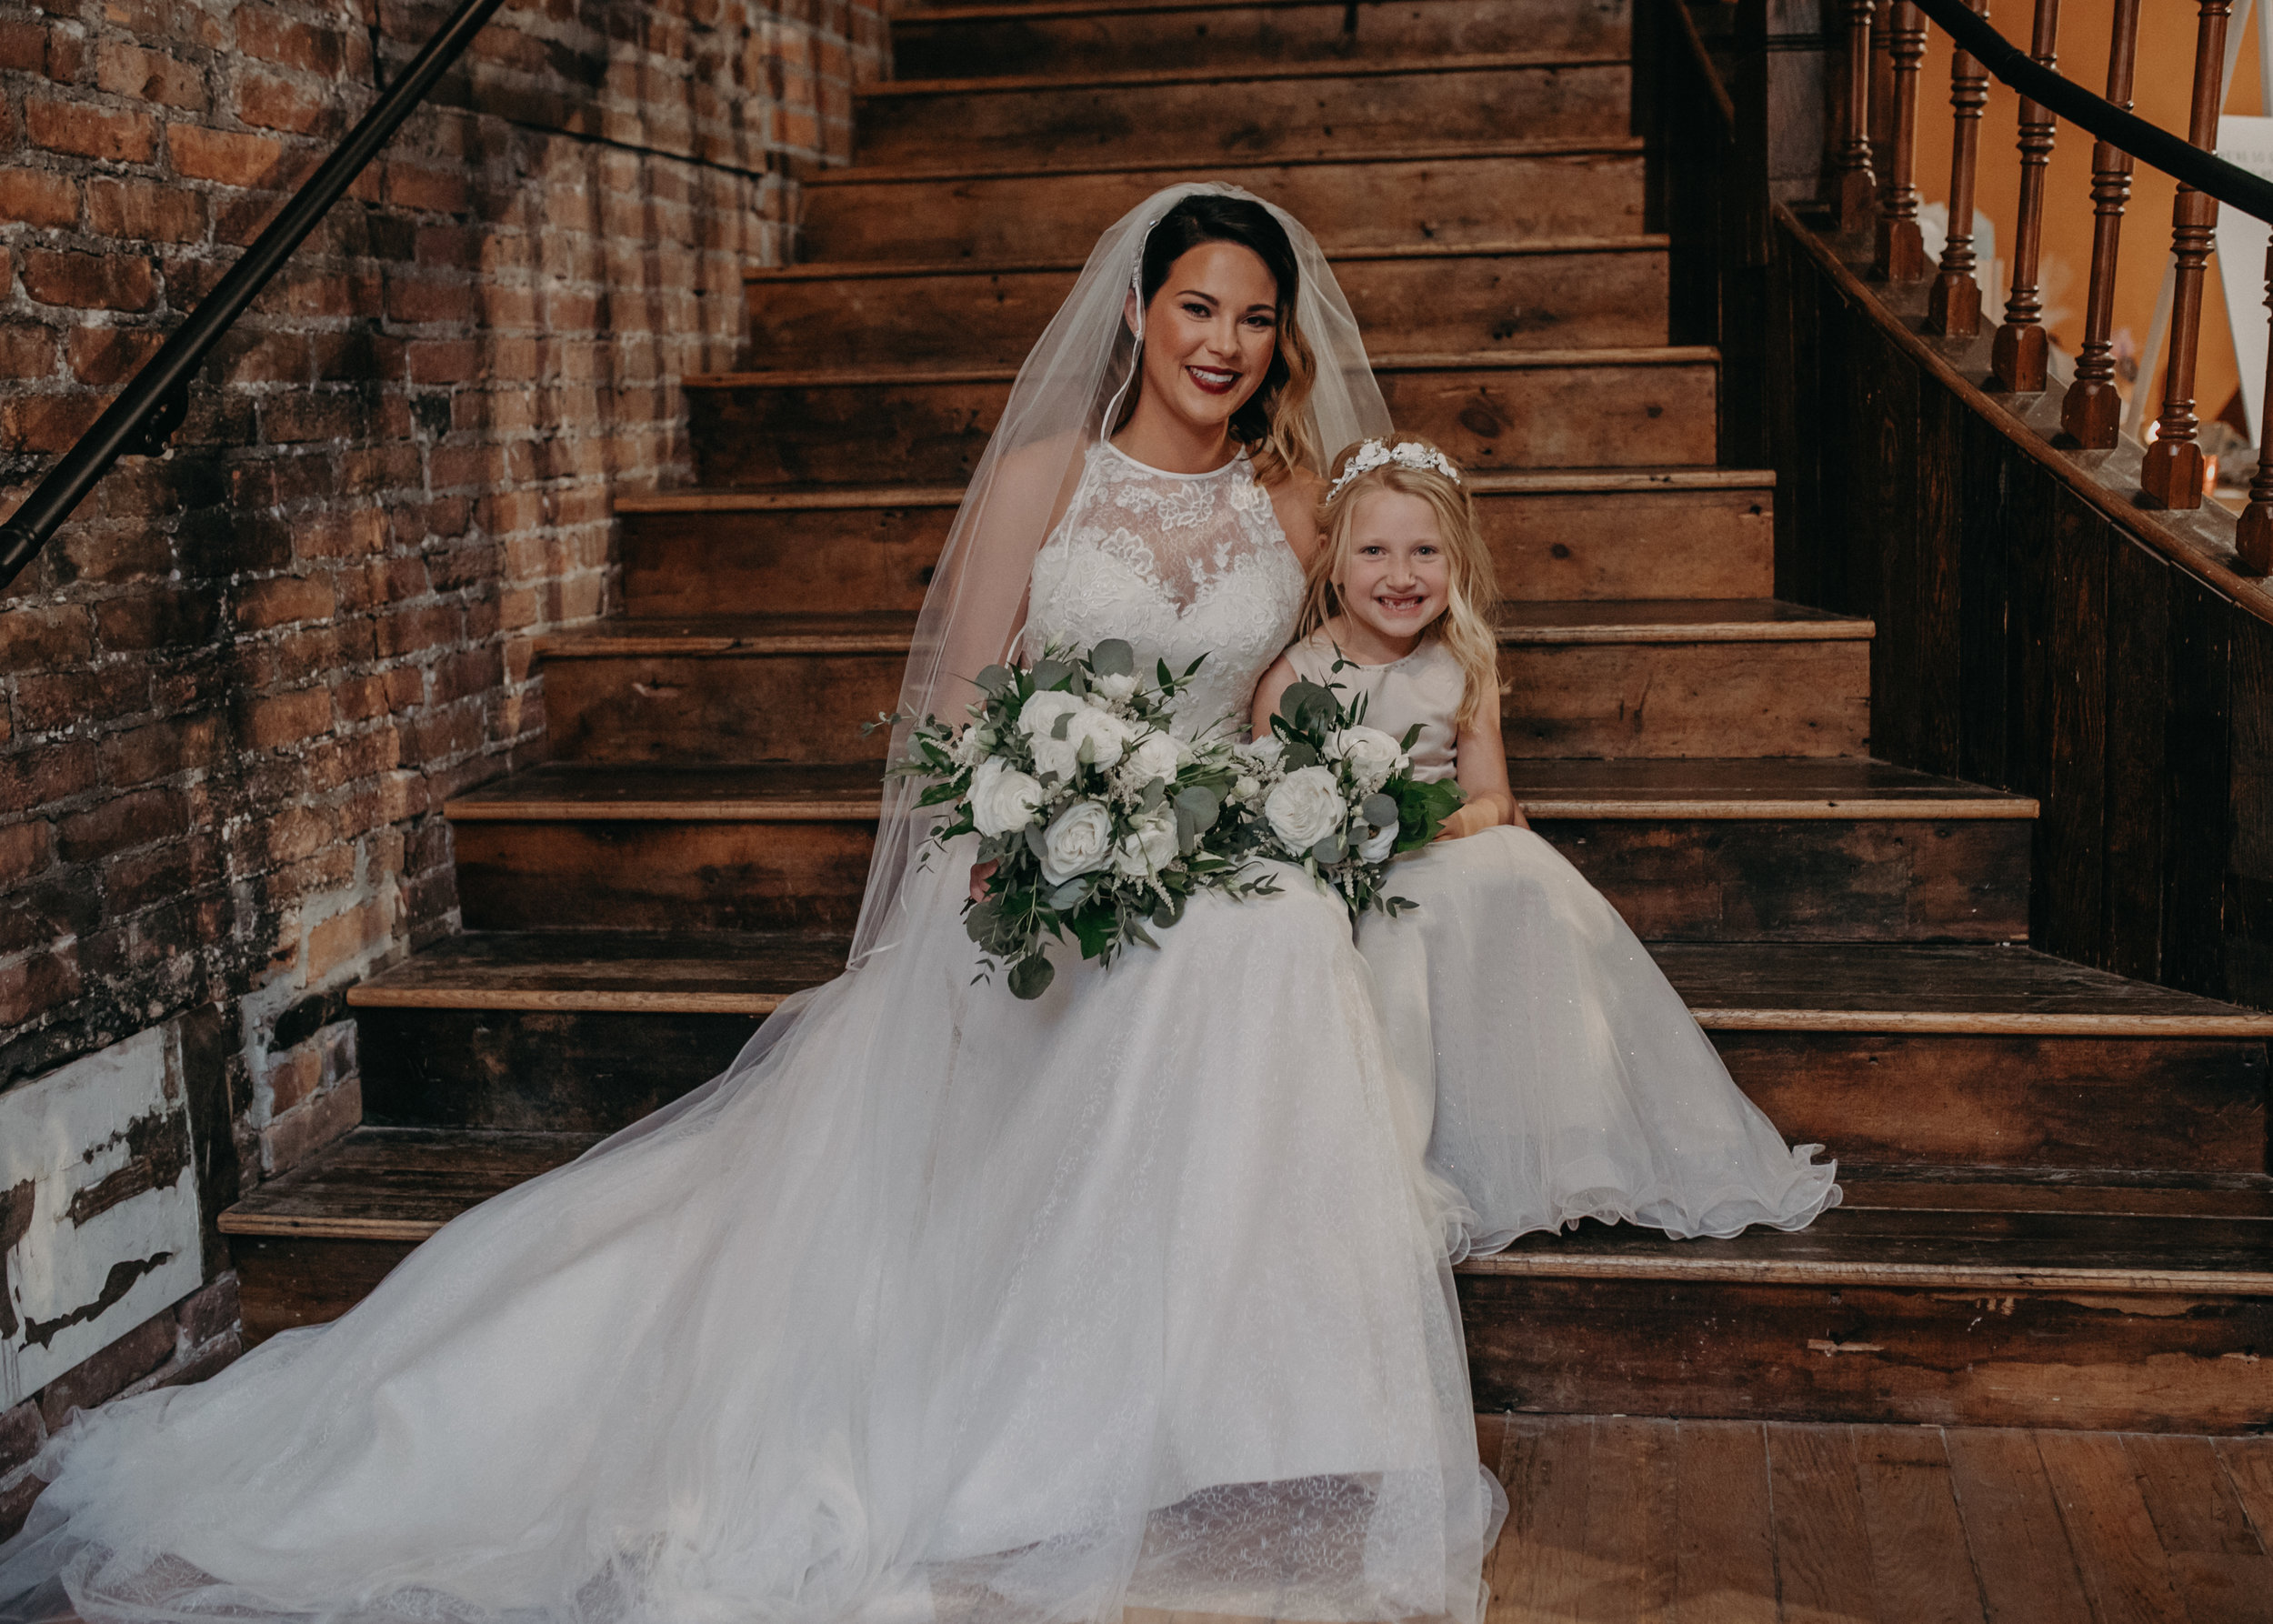 Andrea Wagner Photography captures wedding at the best wedding venue in Stillwater MN